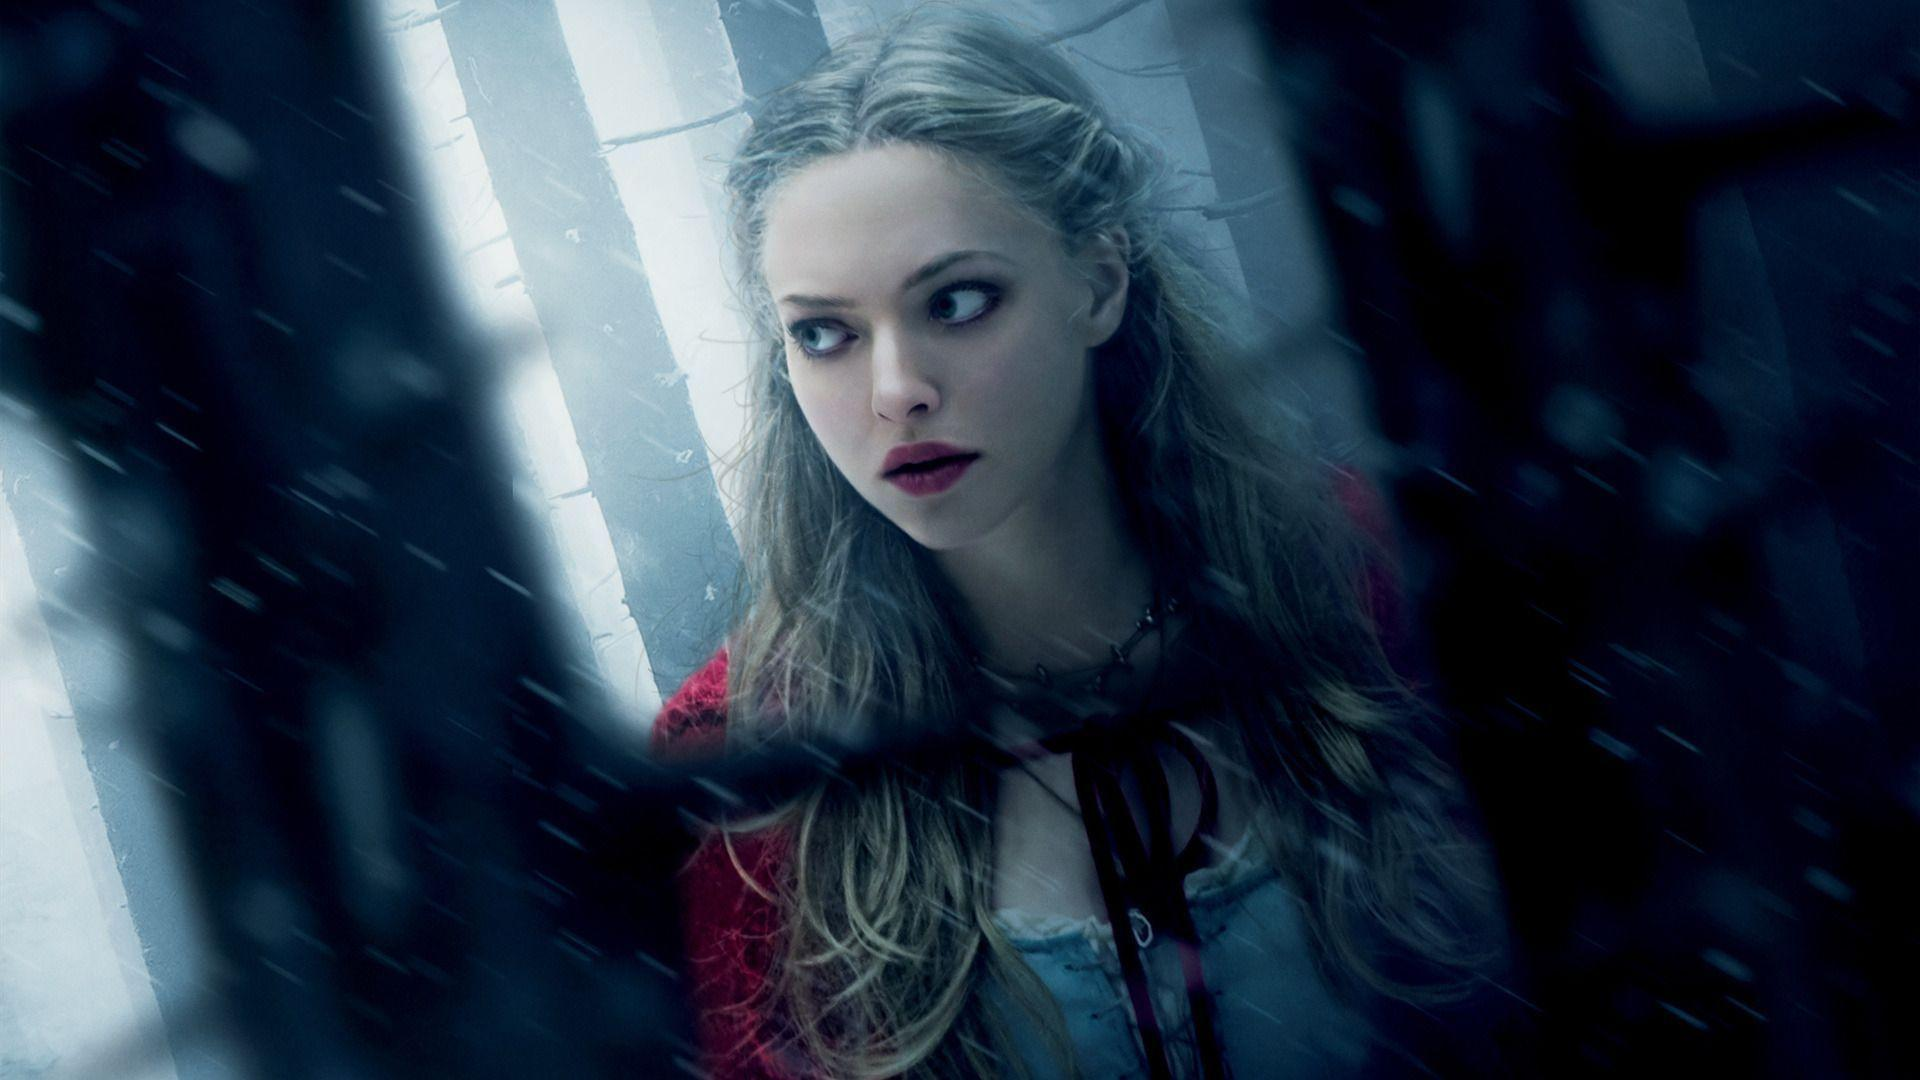 Amanda Seyfried Wallpapers - Page 1 - HD Wallpapers